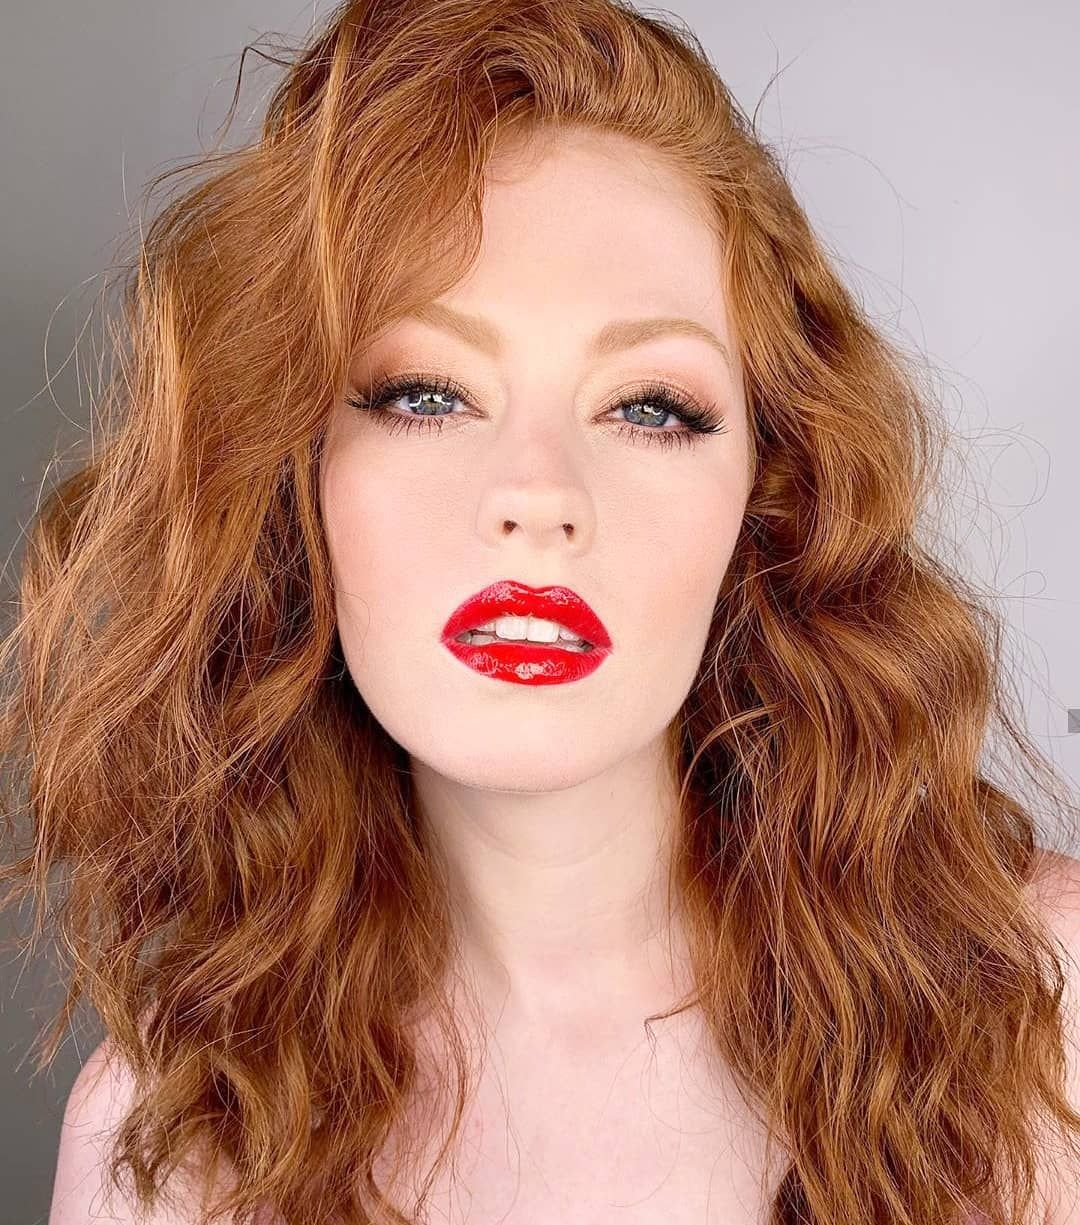 Image result for hottest redhead babe | Red haired beauty